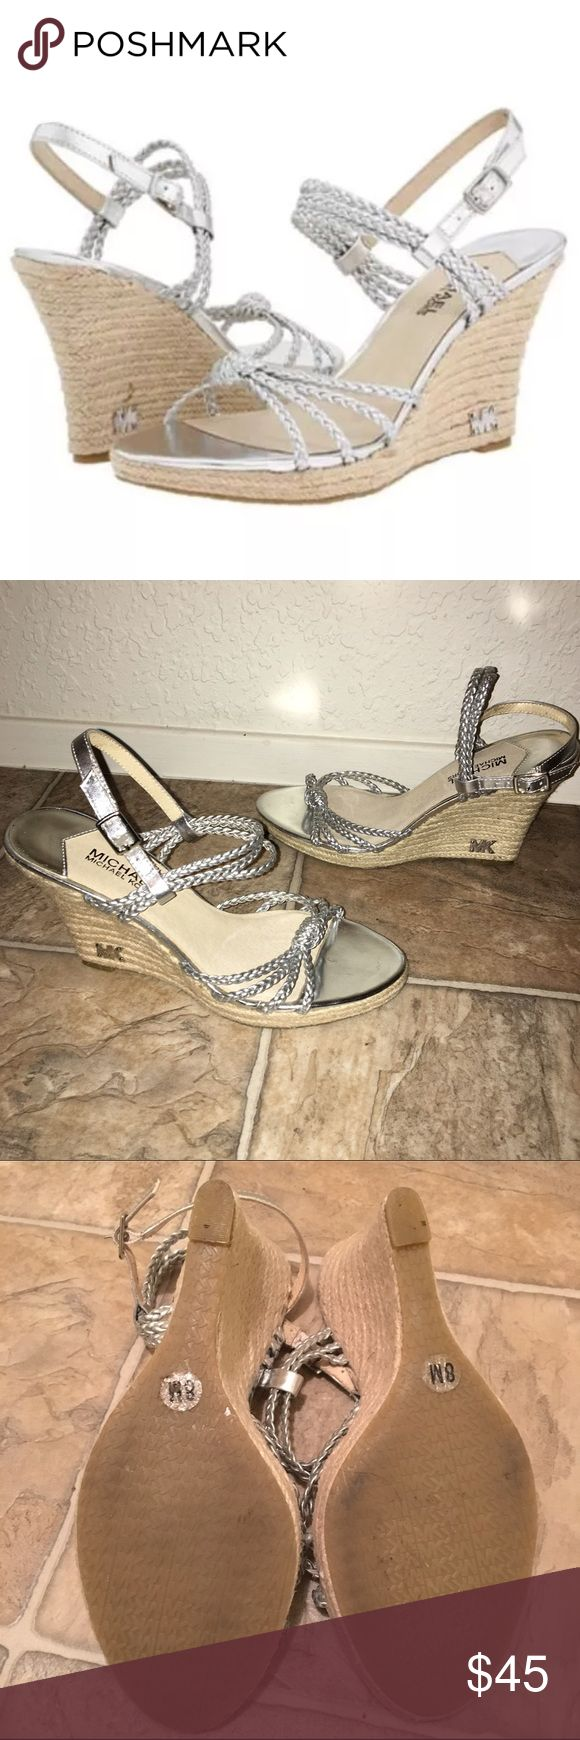 """Michael Kors Palm Beach Braided Silver Espadrilles only worn once, these silver beauties are calling your name for the summer! triple strands with an ankle strap. scratches on the insoles are the only flaws. MK logo on the heel. 4"""" heel Michael Kors Shoes Espadrilles"""